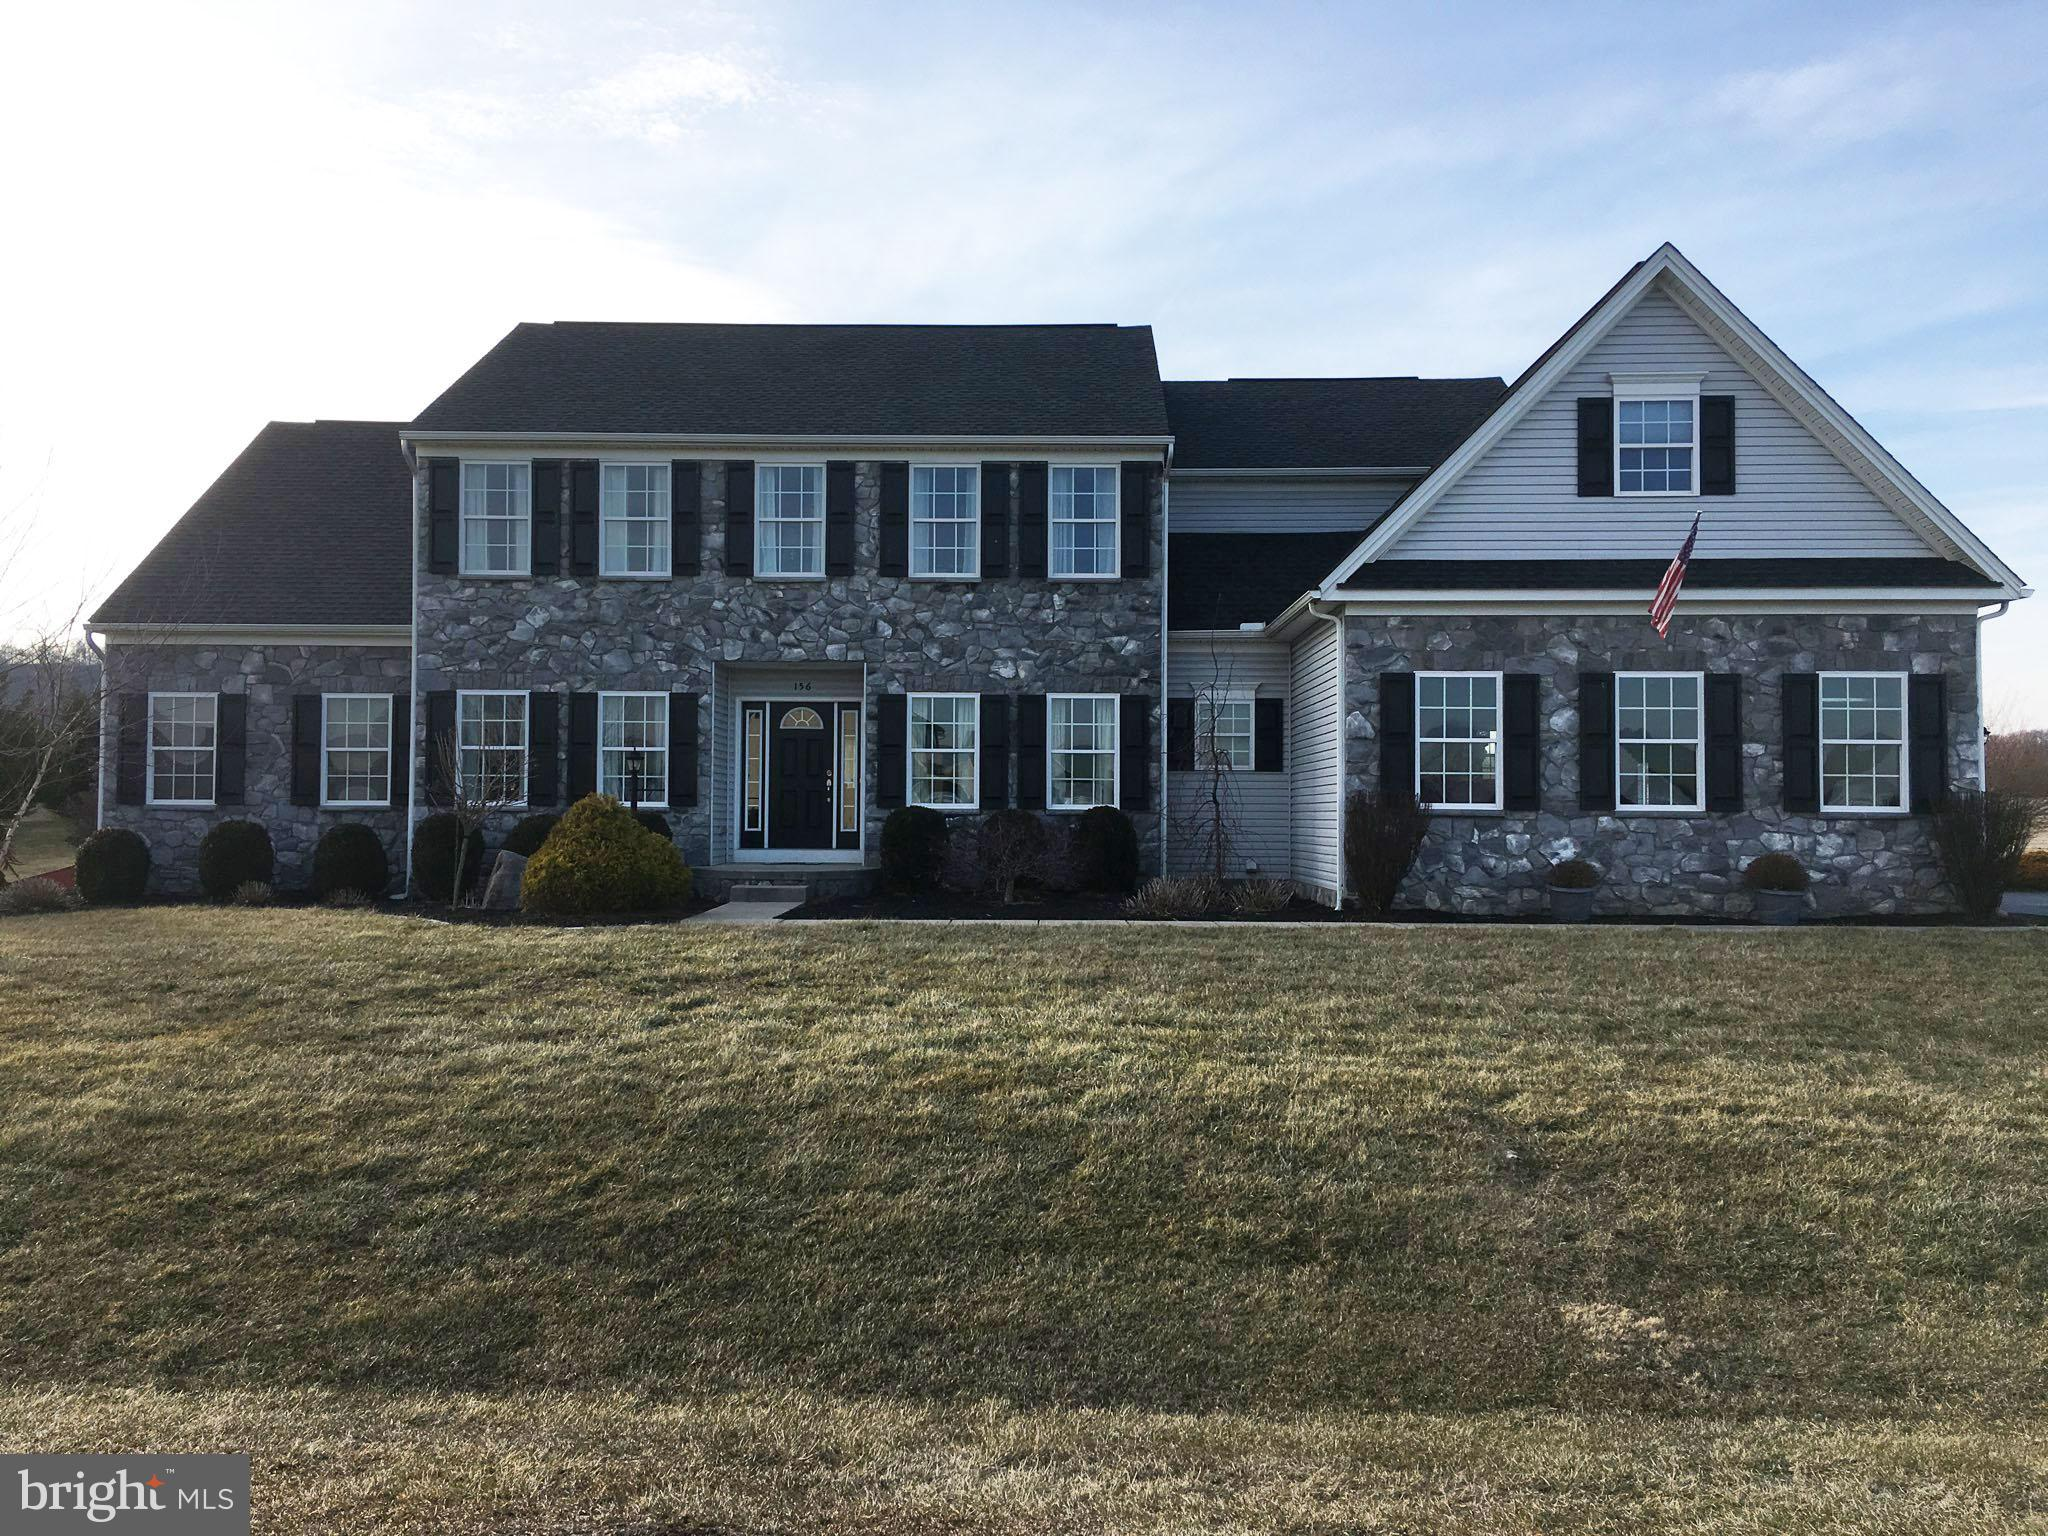 156 CHISHOLM DRIVE S, HEDGESVILLE, WV 25427